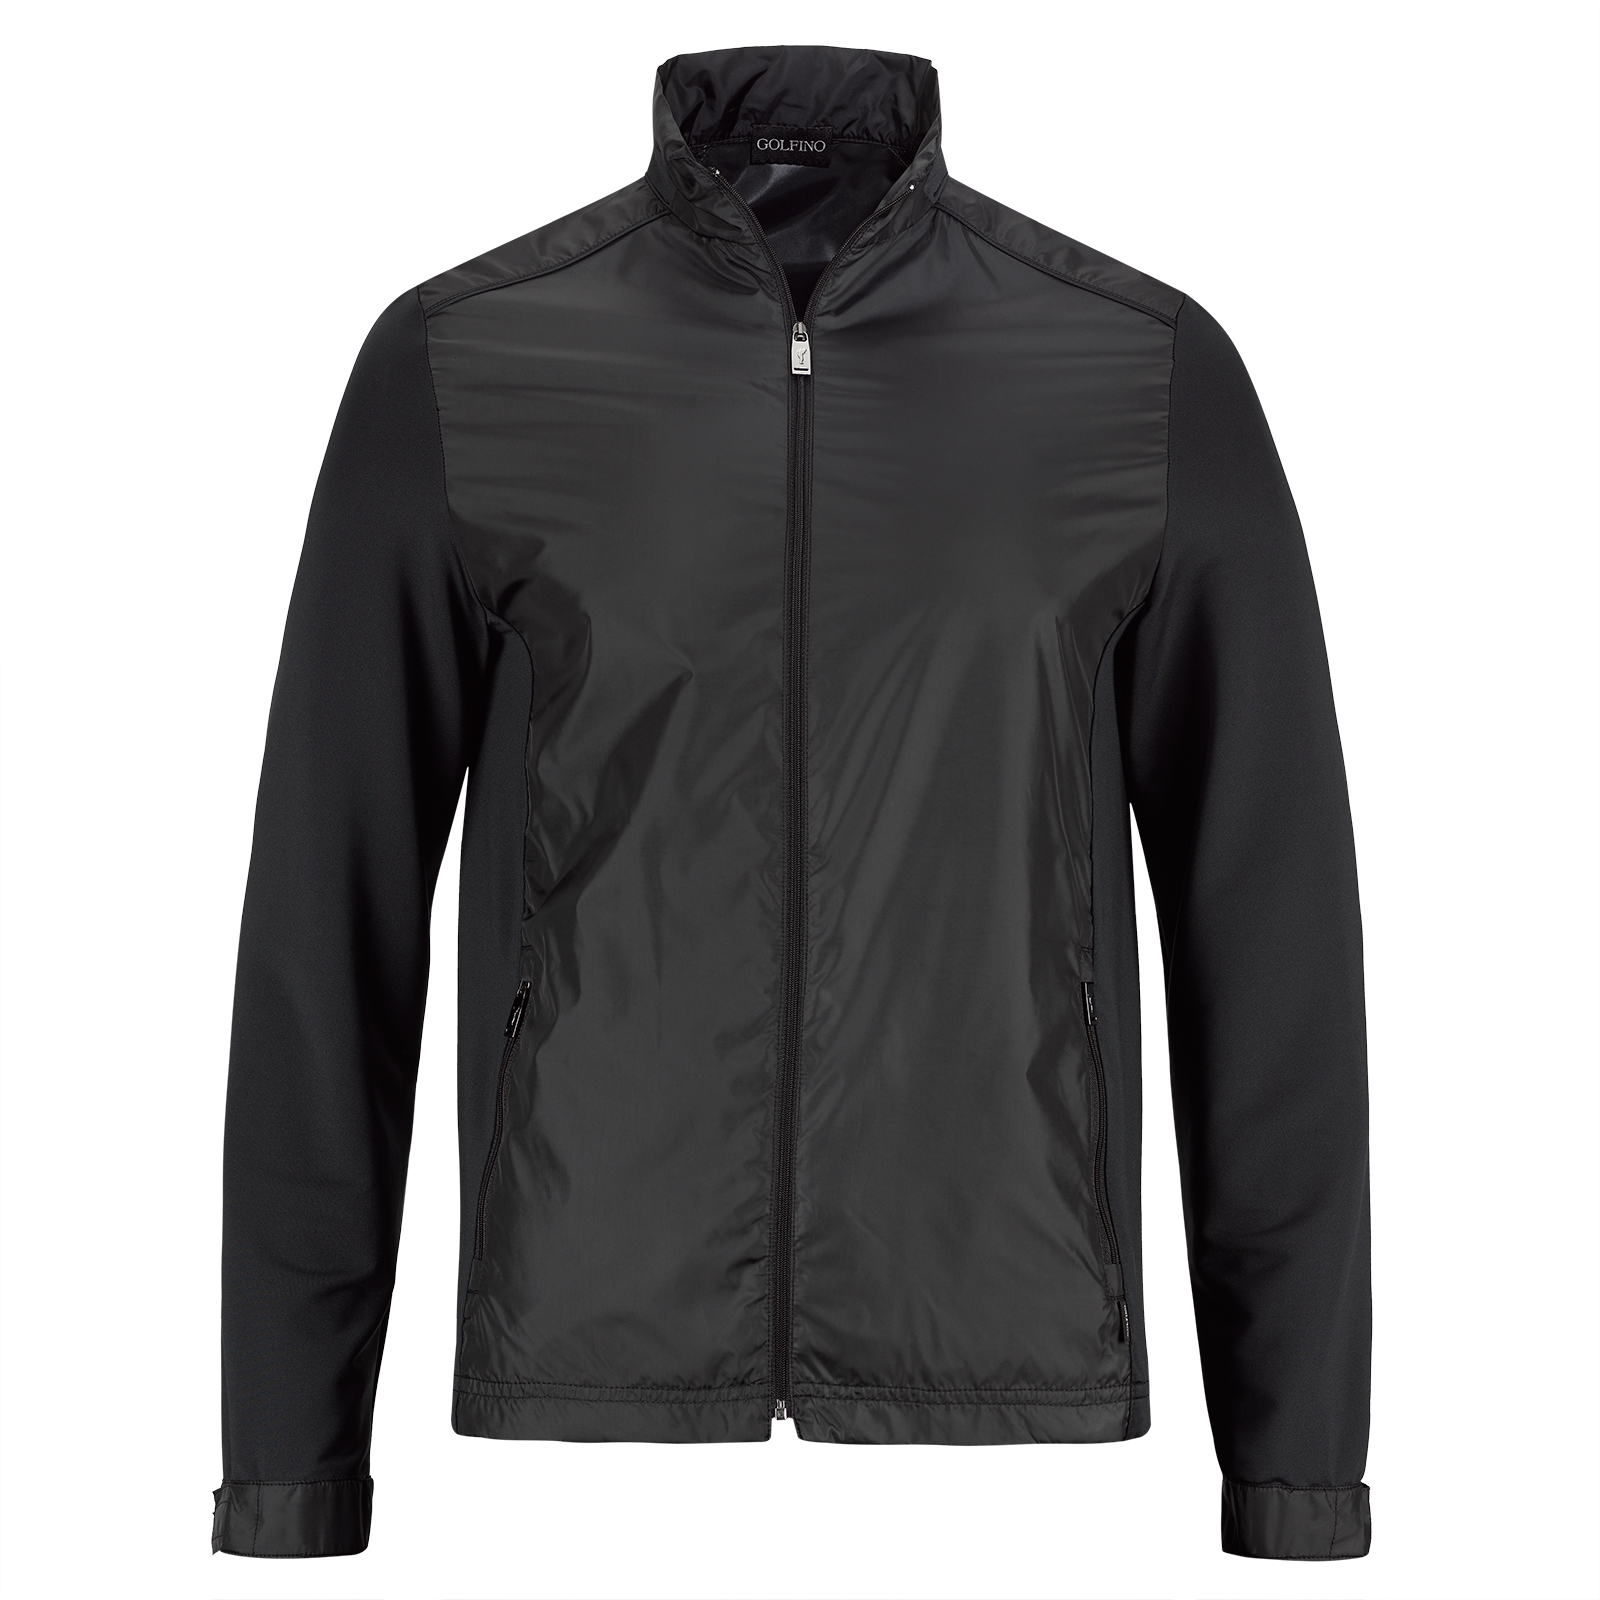 Chaqueta de golf profesional de hombre con Wind Protection ultraligera y transpirable